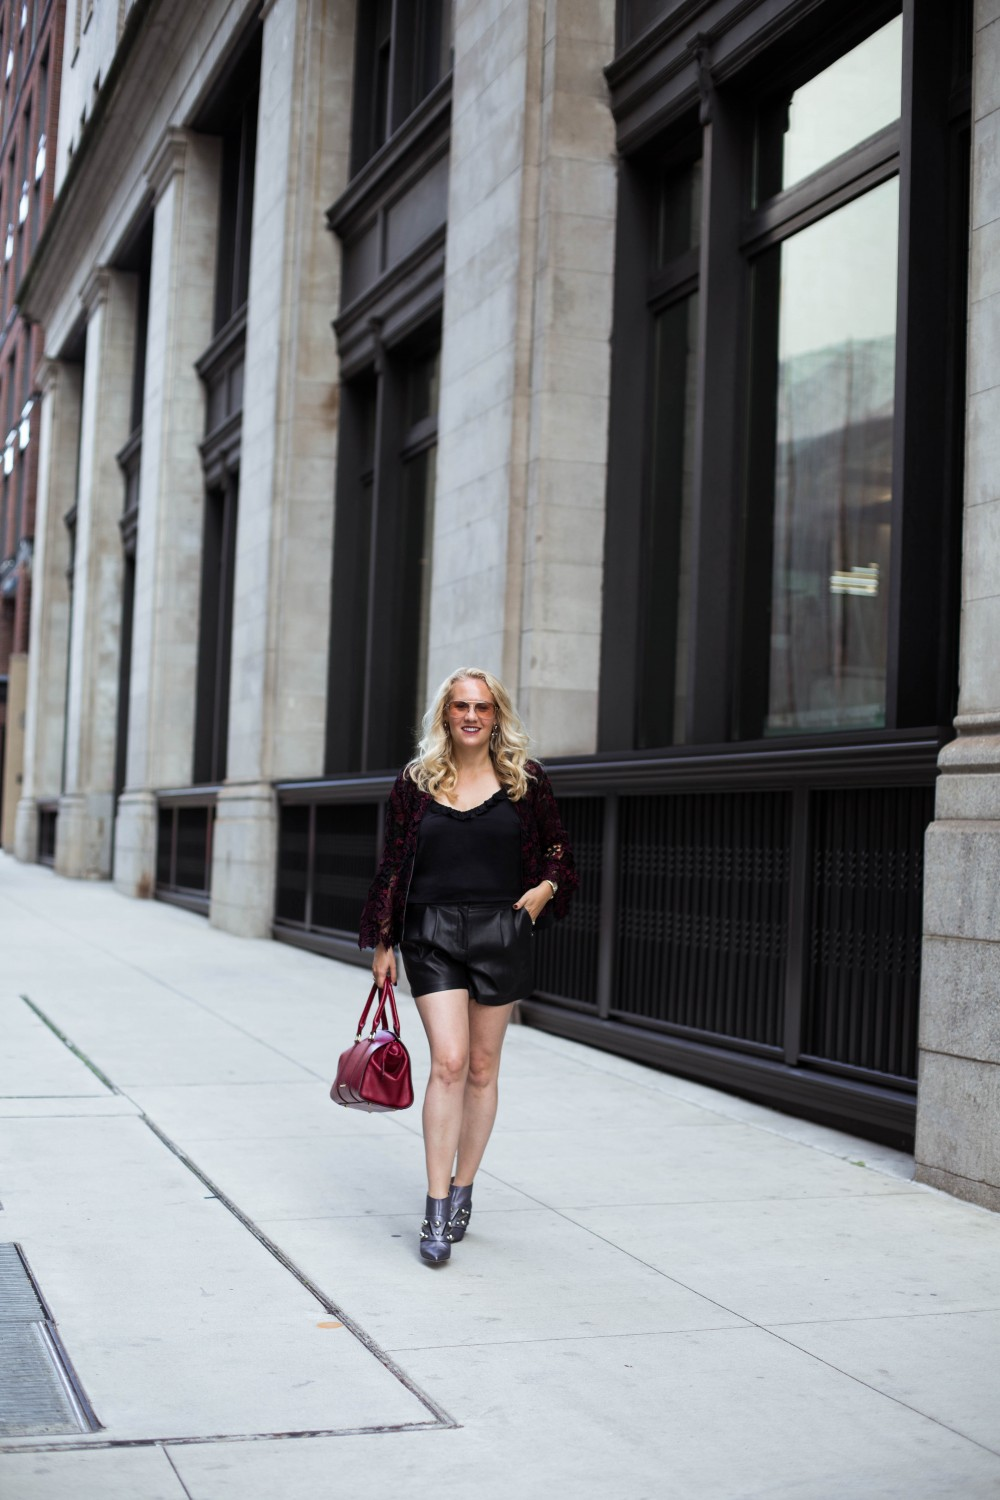 Lace Bomber Jacket-Kobi Halperin for Macy's-NYFW Street Style-NYFW SS18-Outfit Inspiration-Faux Leather Shorts-BCBG-Fall Fashion-Donald Pliner Booties-Geene Boots from Donald J Pliner-Have Need Want 9